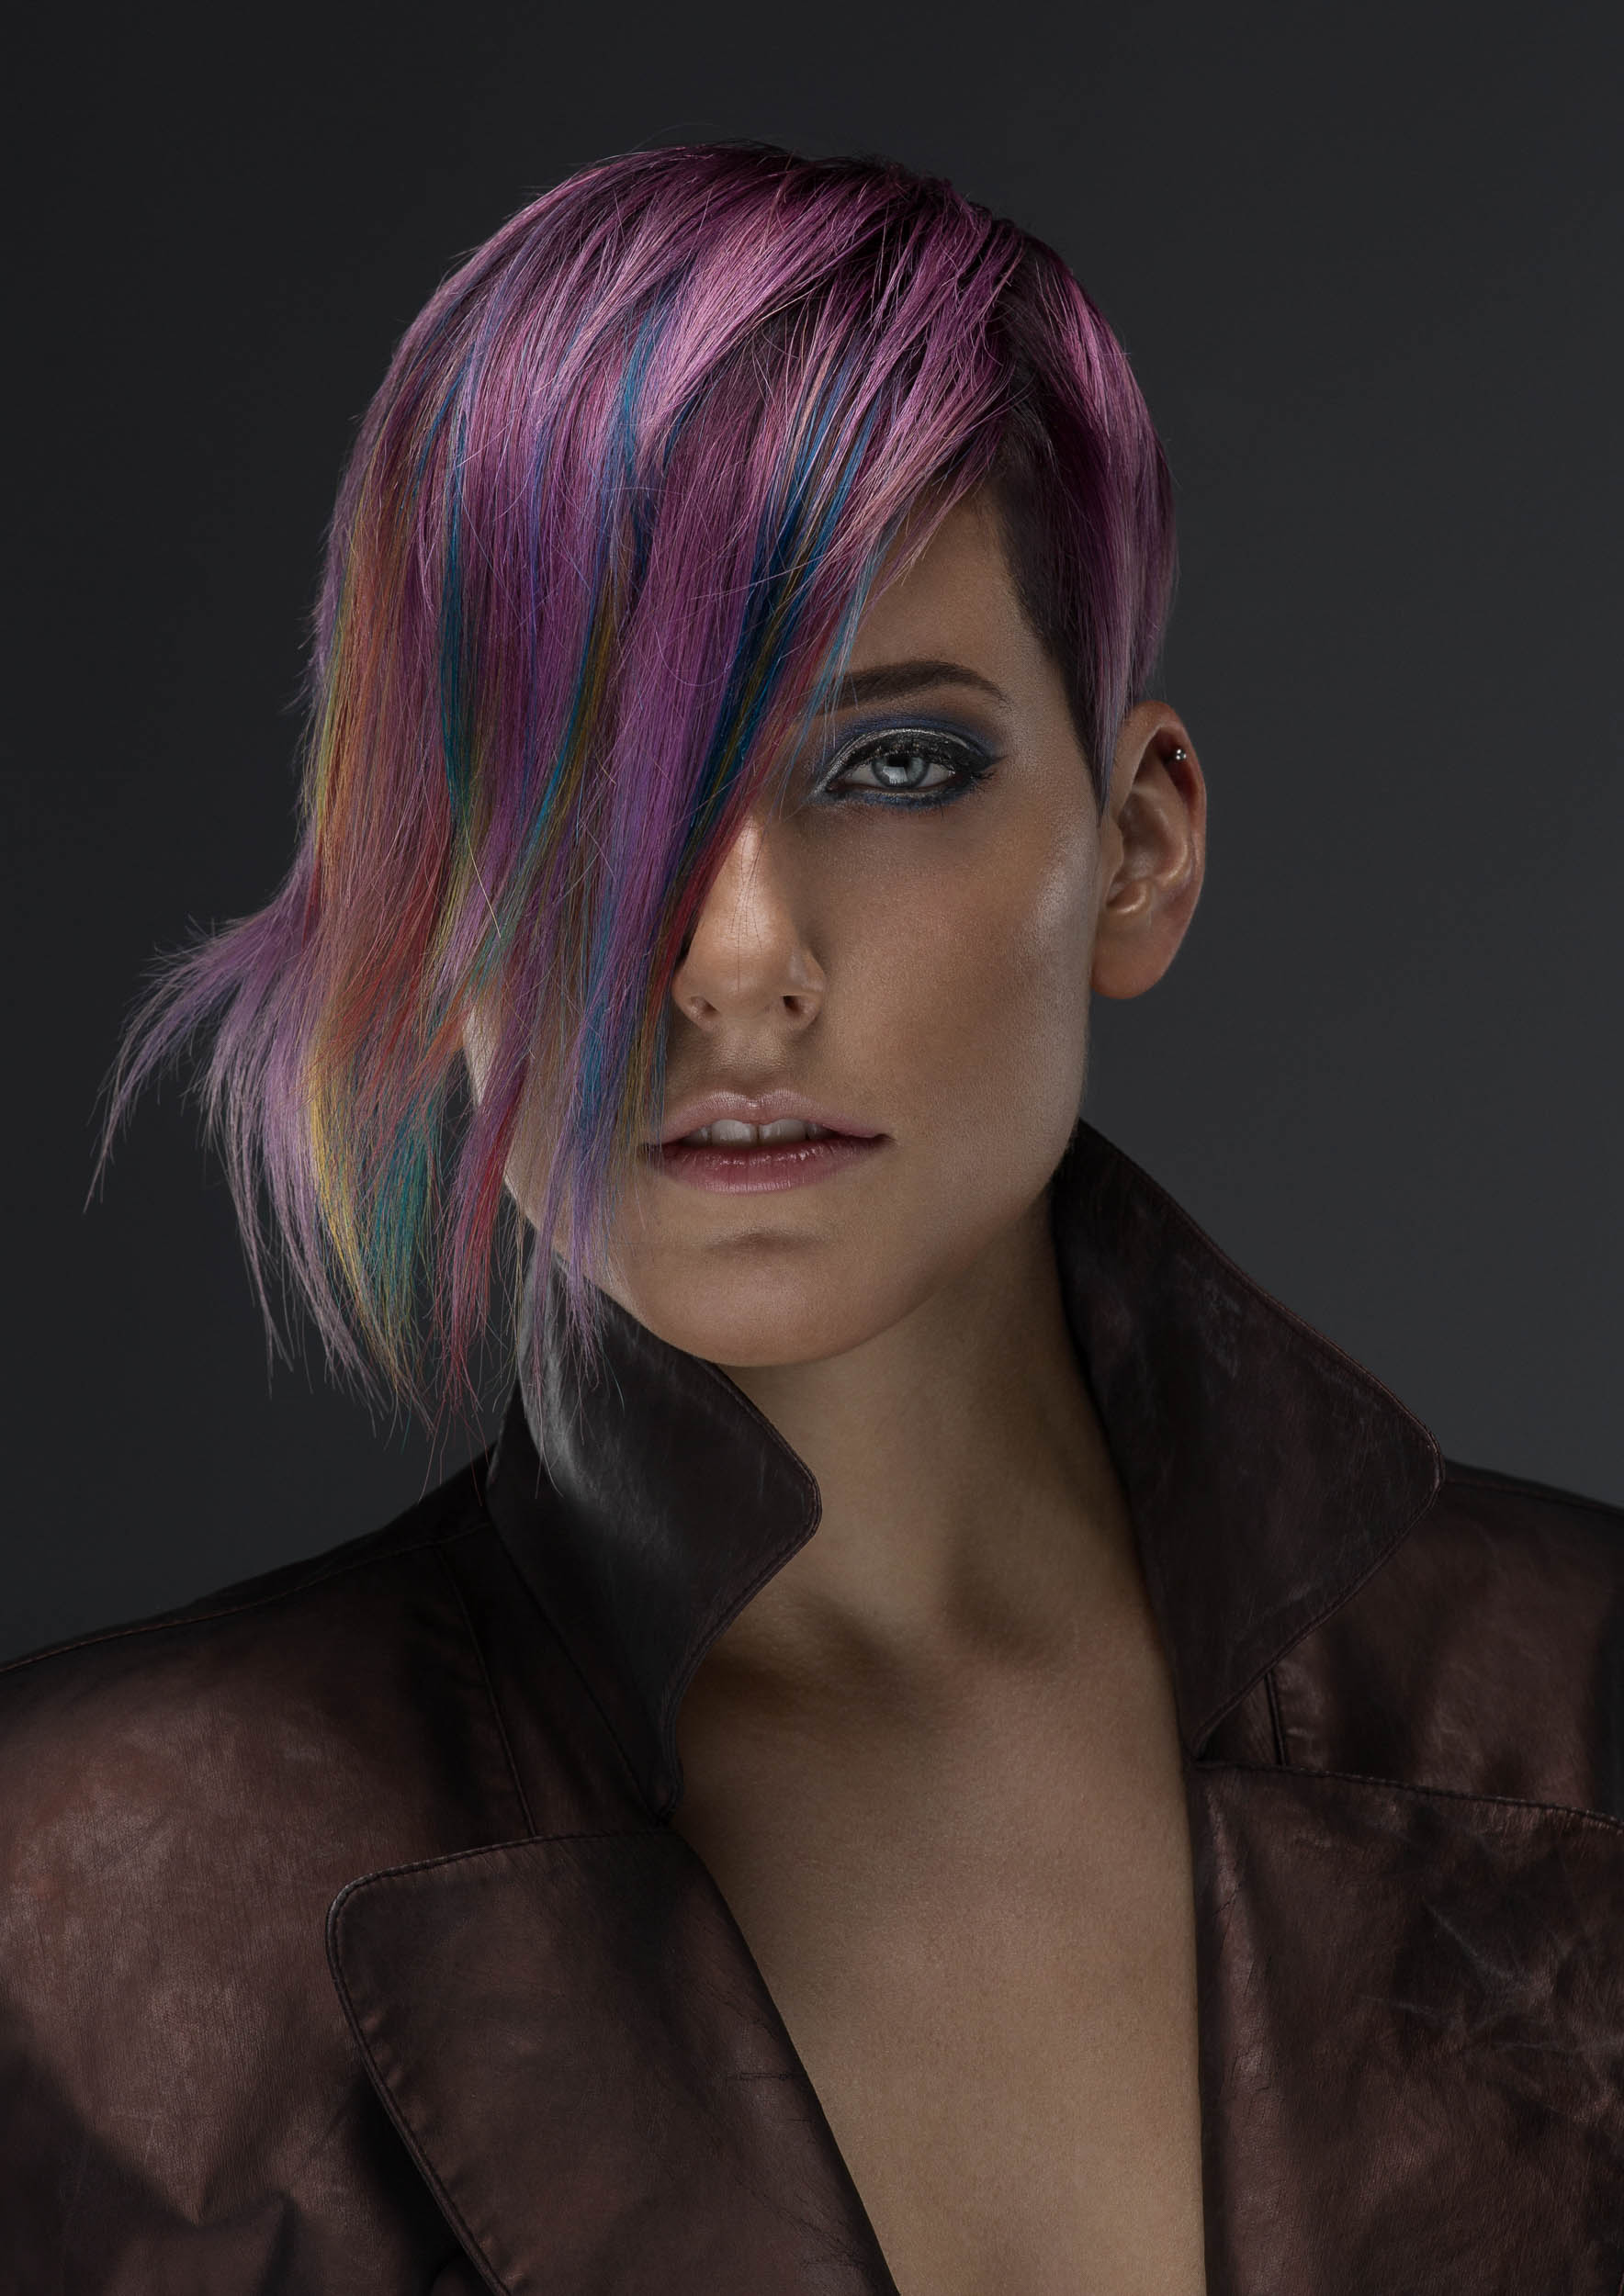 Photo by Nick Walters photographer of model for hair colourist colouring competion2.jpg